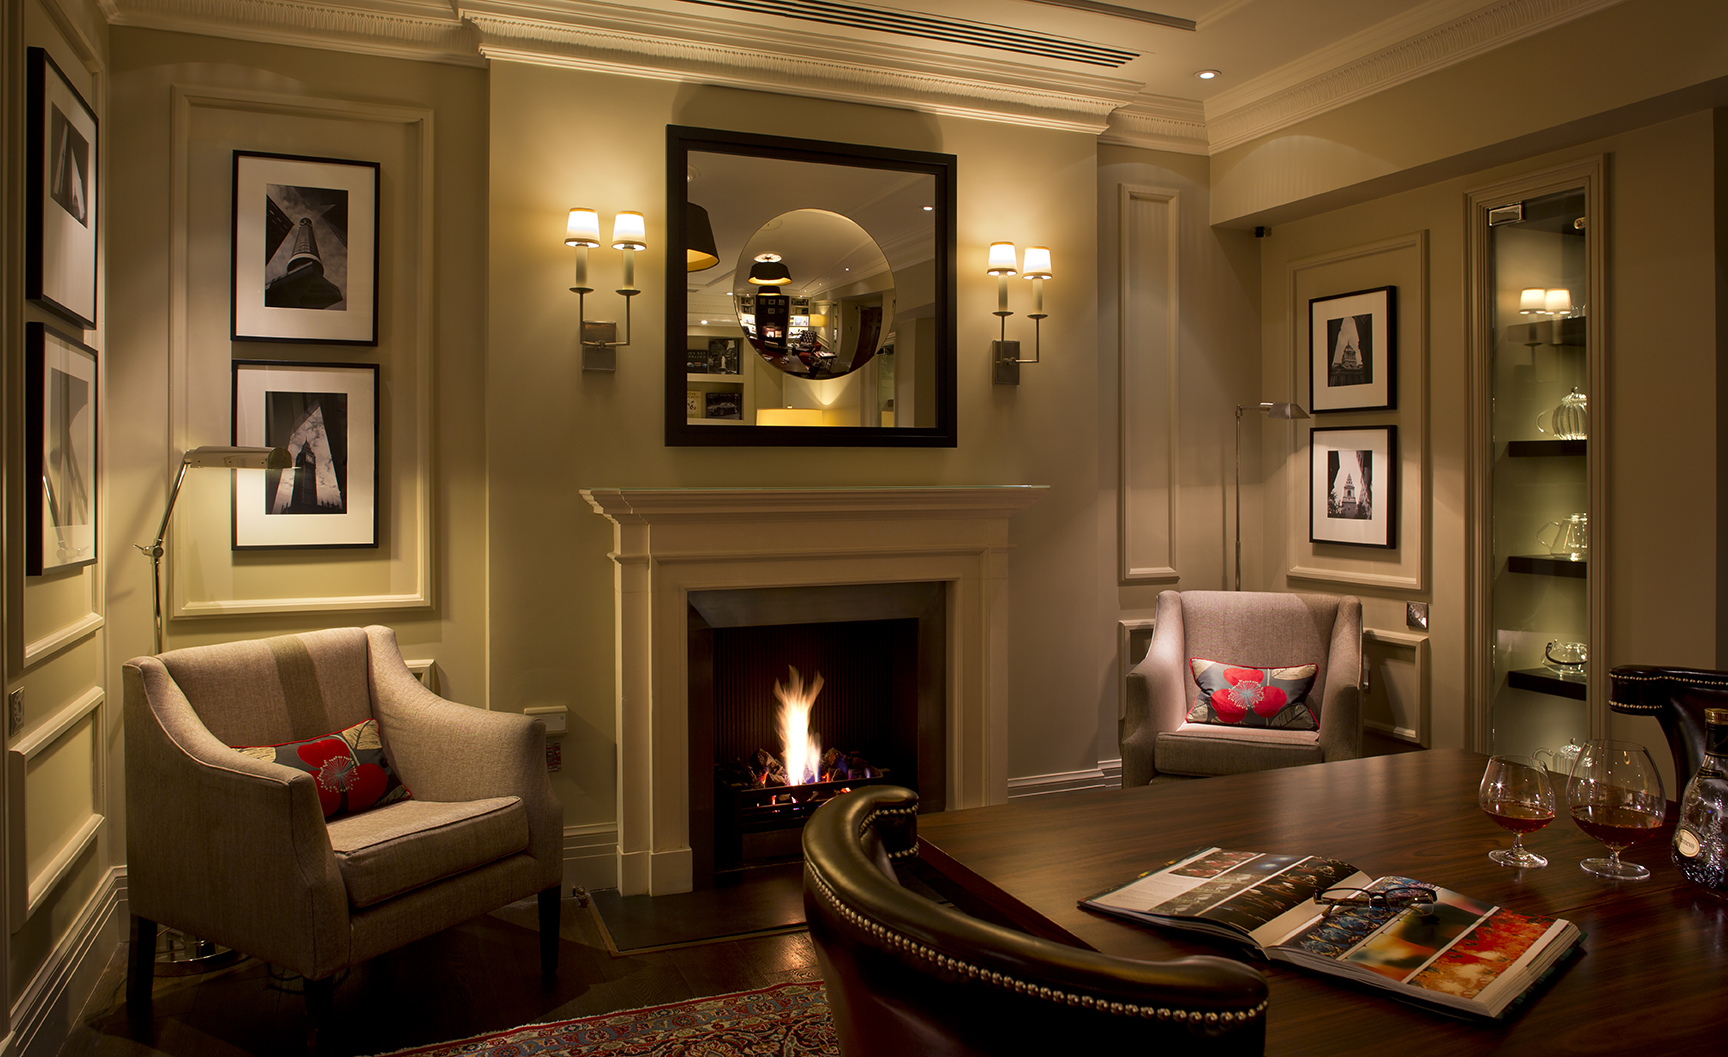 3. Martini Library, The Arch London. Photography must be credited to The Arch London.jpg